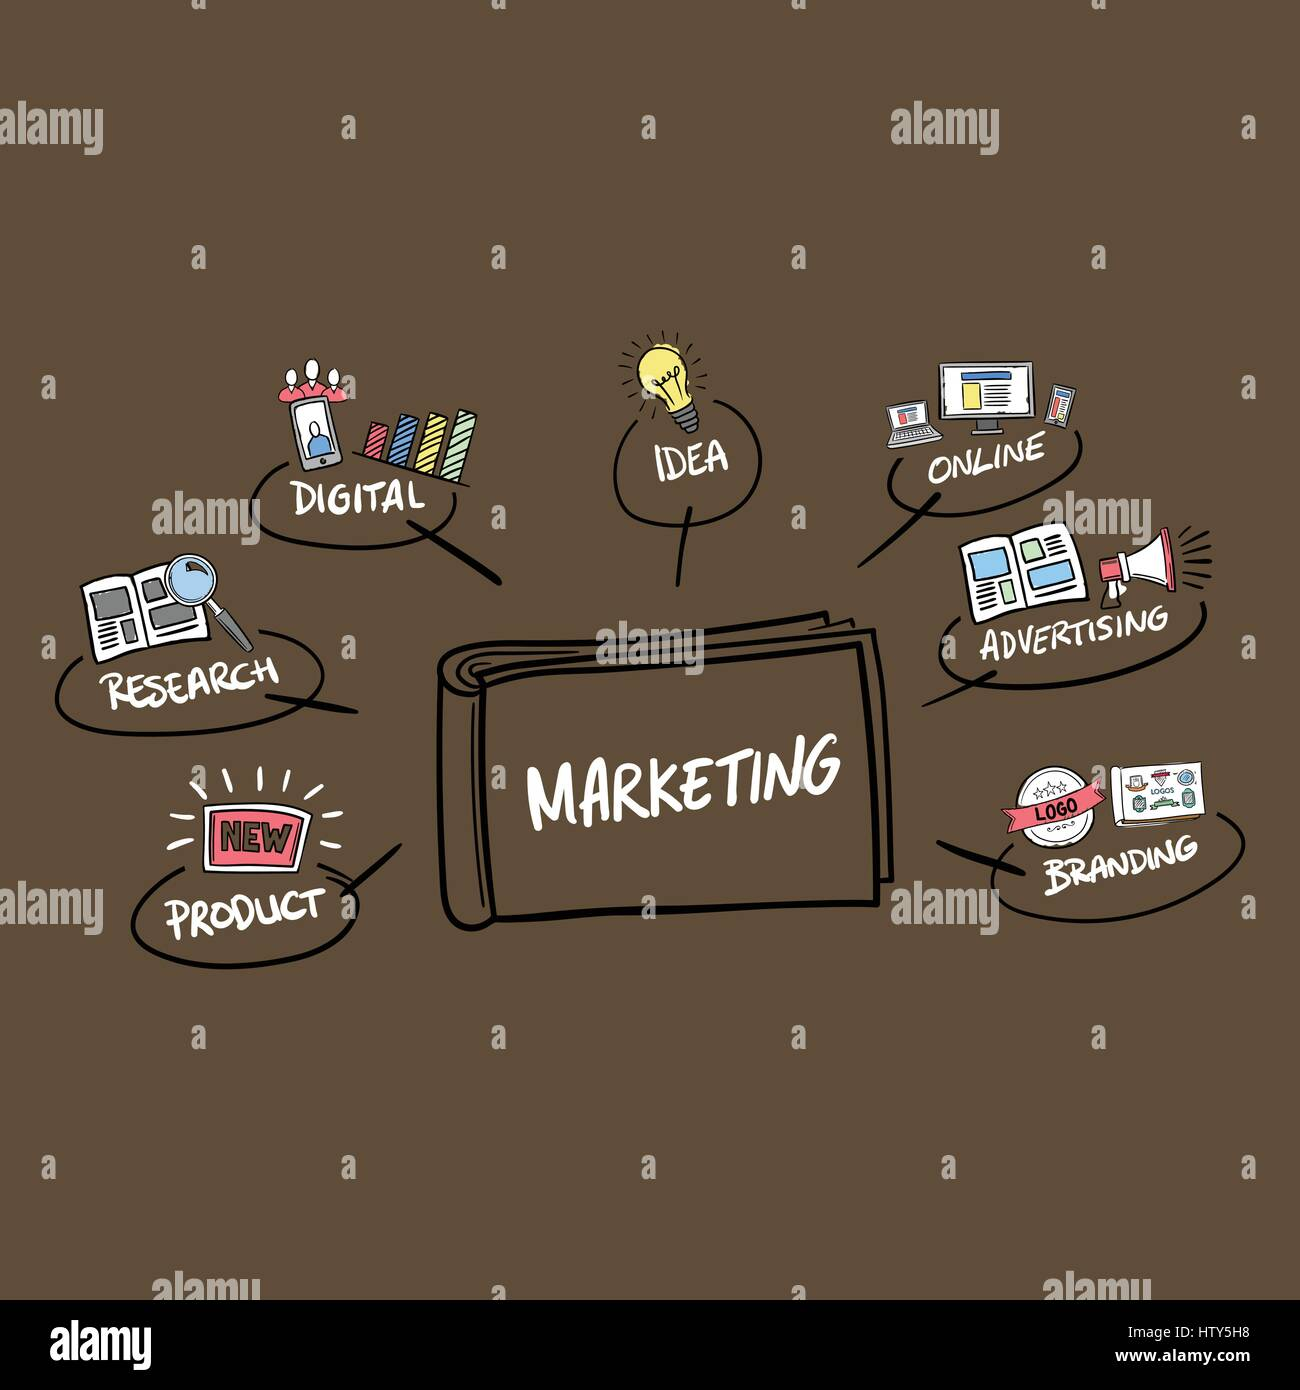 Vector icon of marketing concepts against brown background - Stock Image